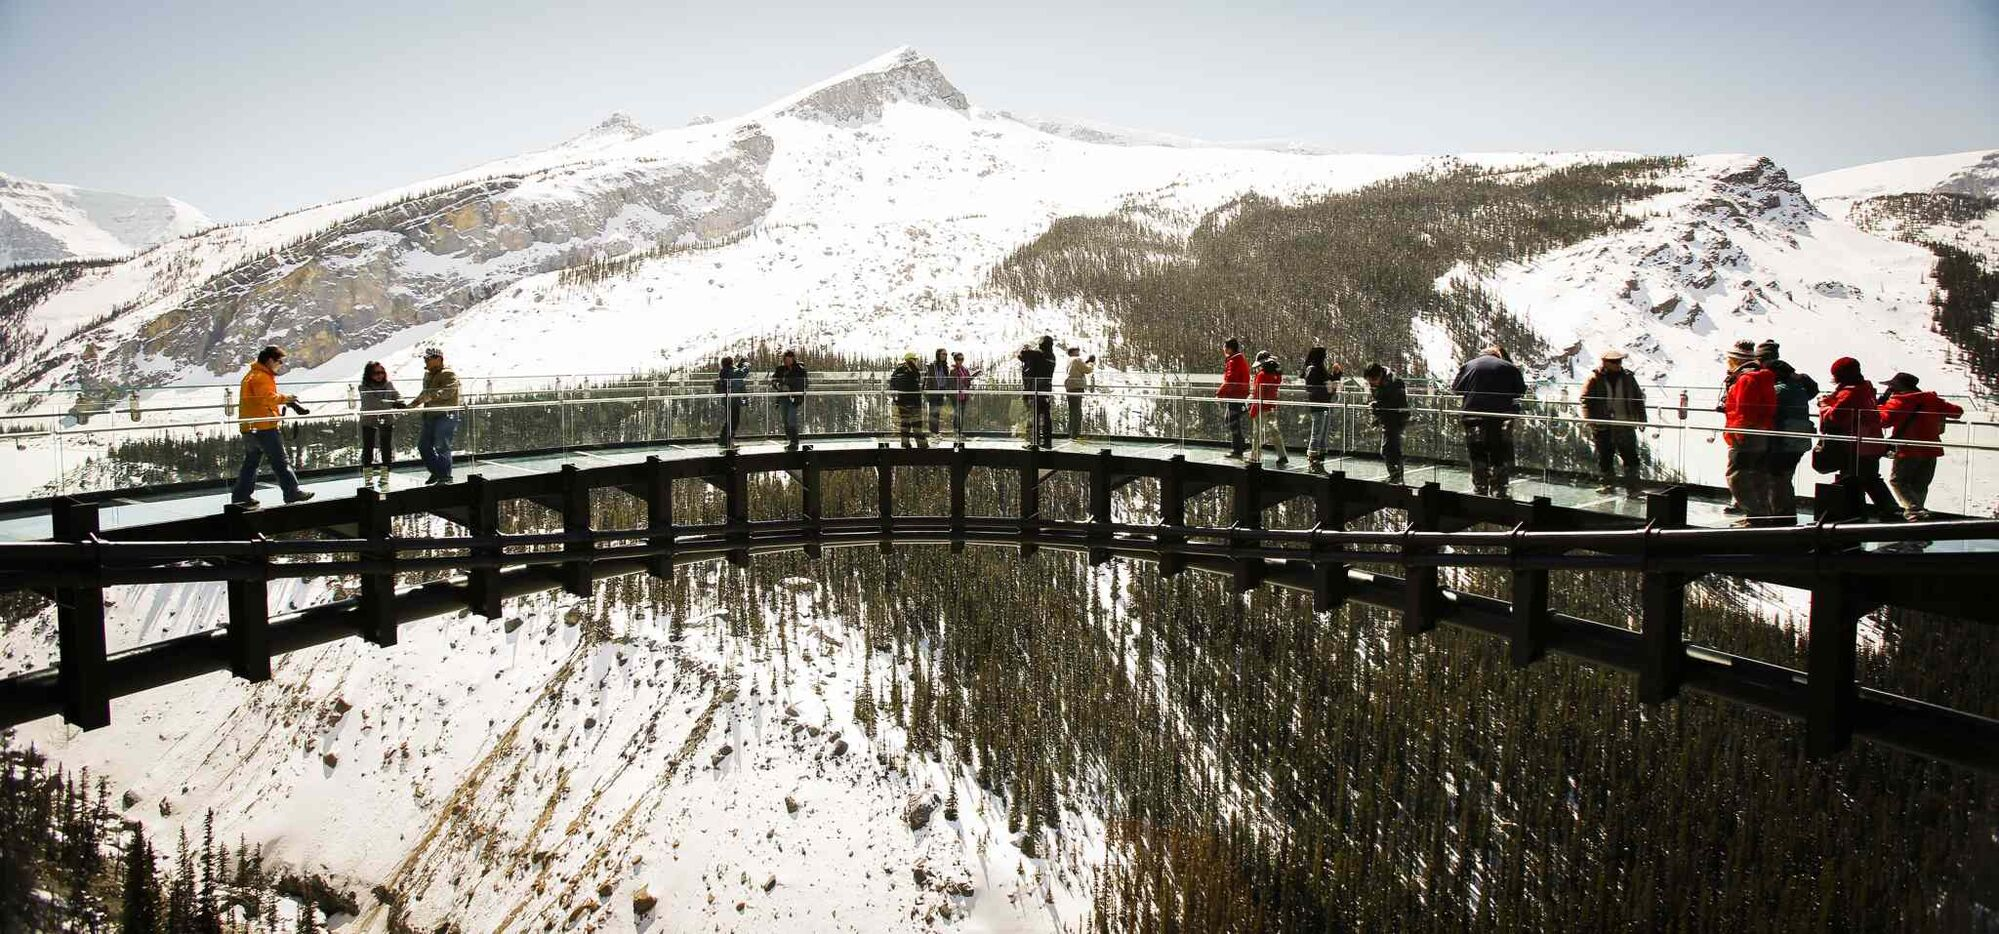 Tourists take in the views from the newly opened Glacier SkyWalk near the Columbia Icefields in Alberta's Jasper National Park. Many environmentalists and residents of Jasper believe it is unnecessary and poses a risk to wildlife, particularly mountain goats and bighorn sheep. The Alberta Wilderness Association says it represents